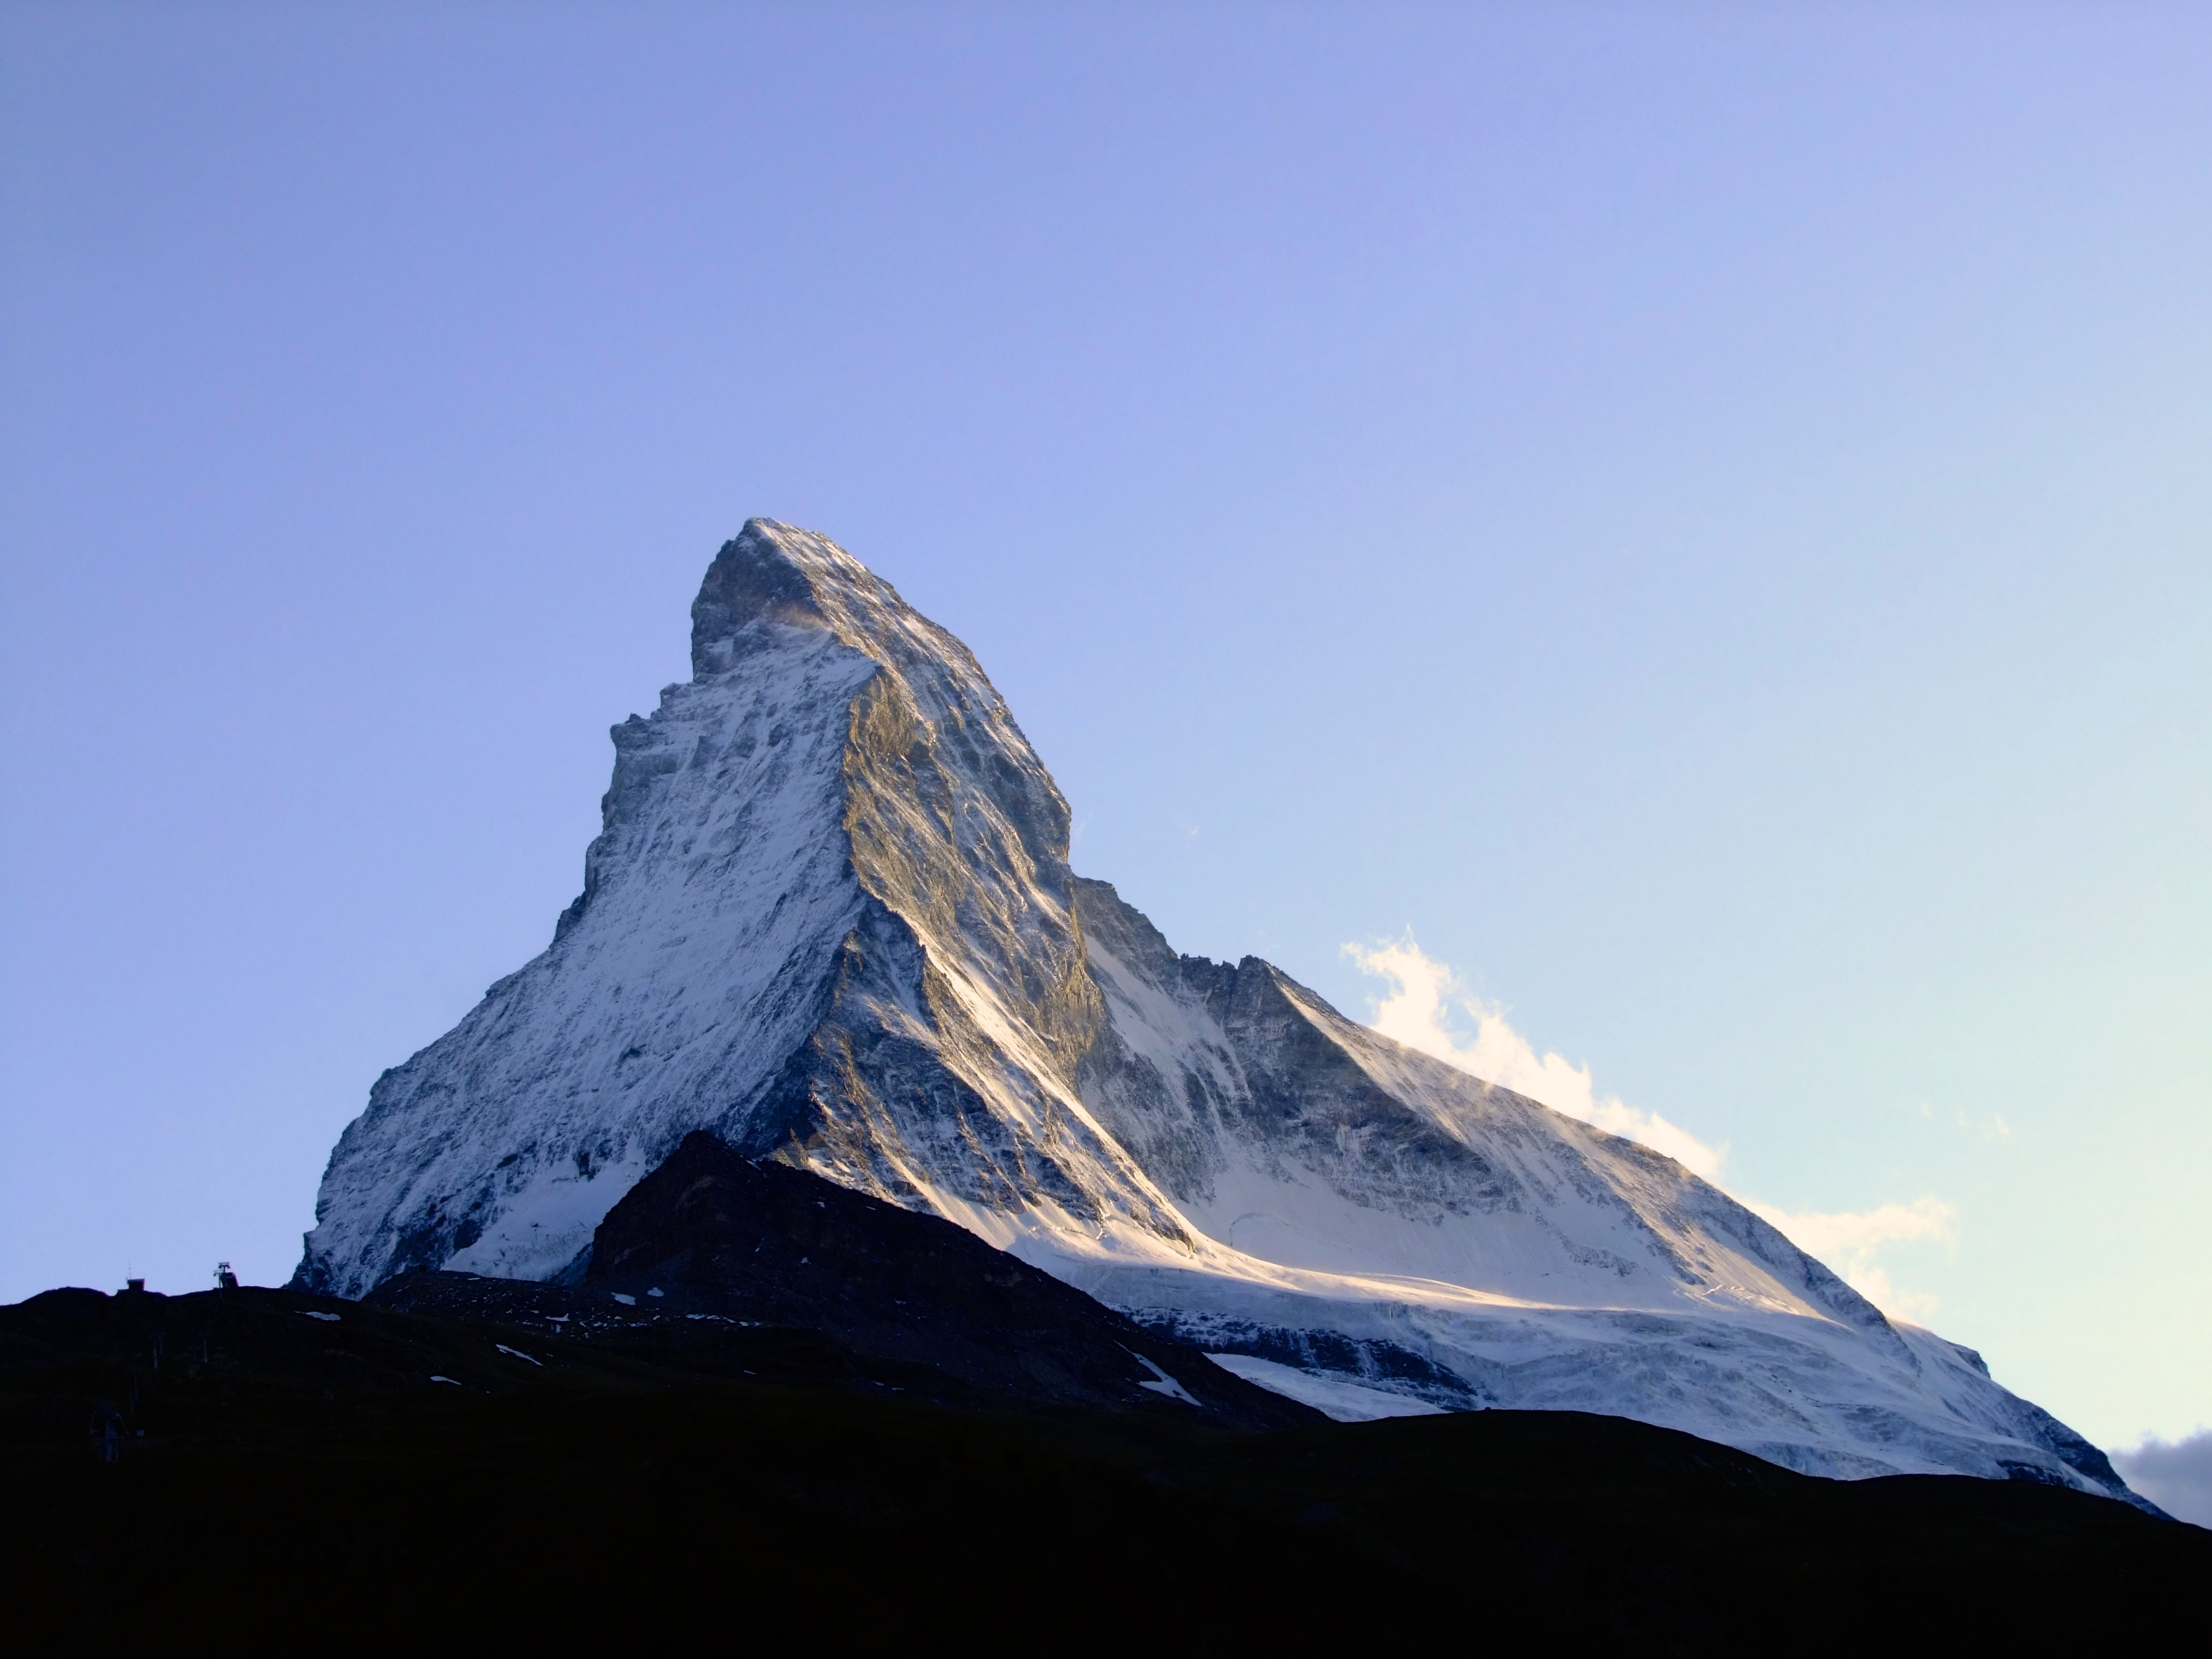 The peak of a mountain in the Swiss Alps